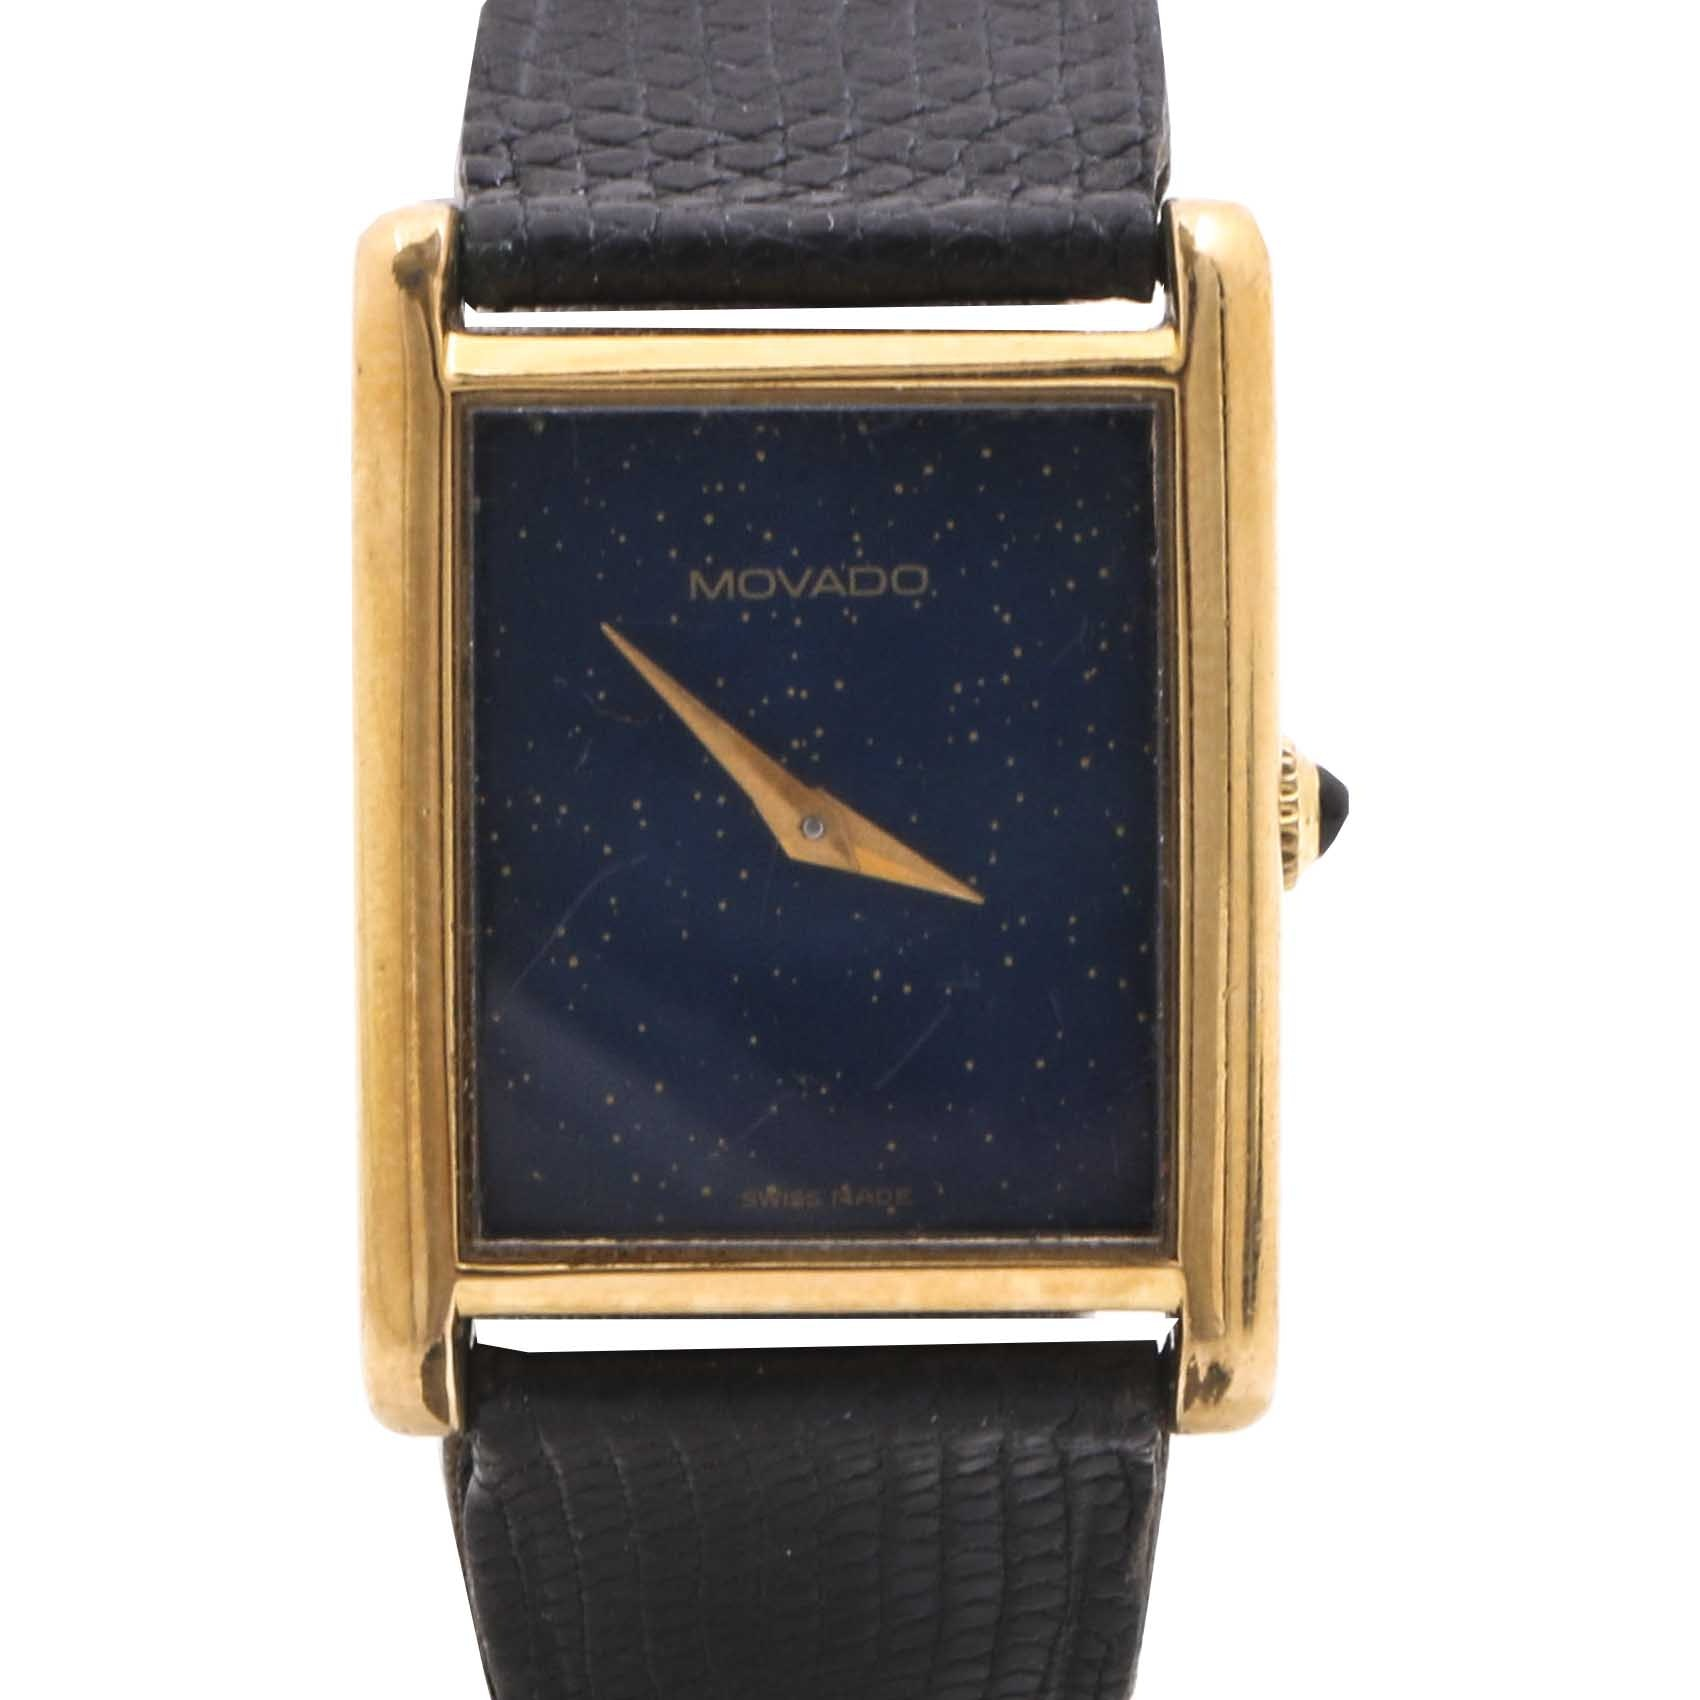 Movado Gold Plate and Black Leather Wristwatch